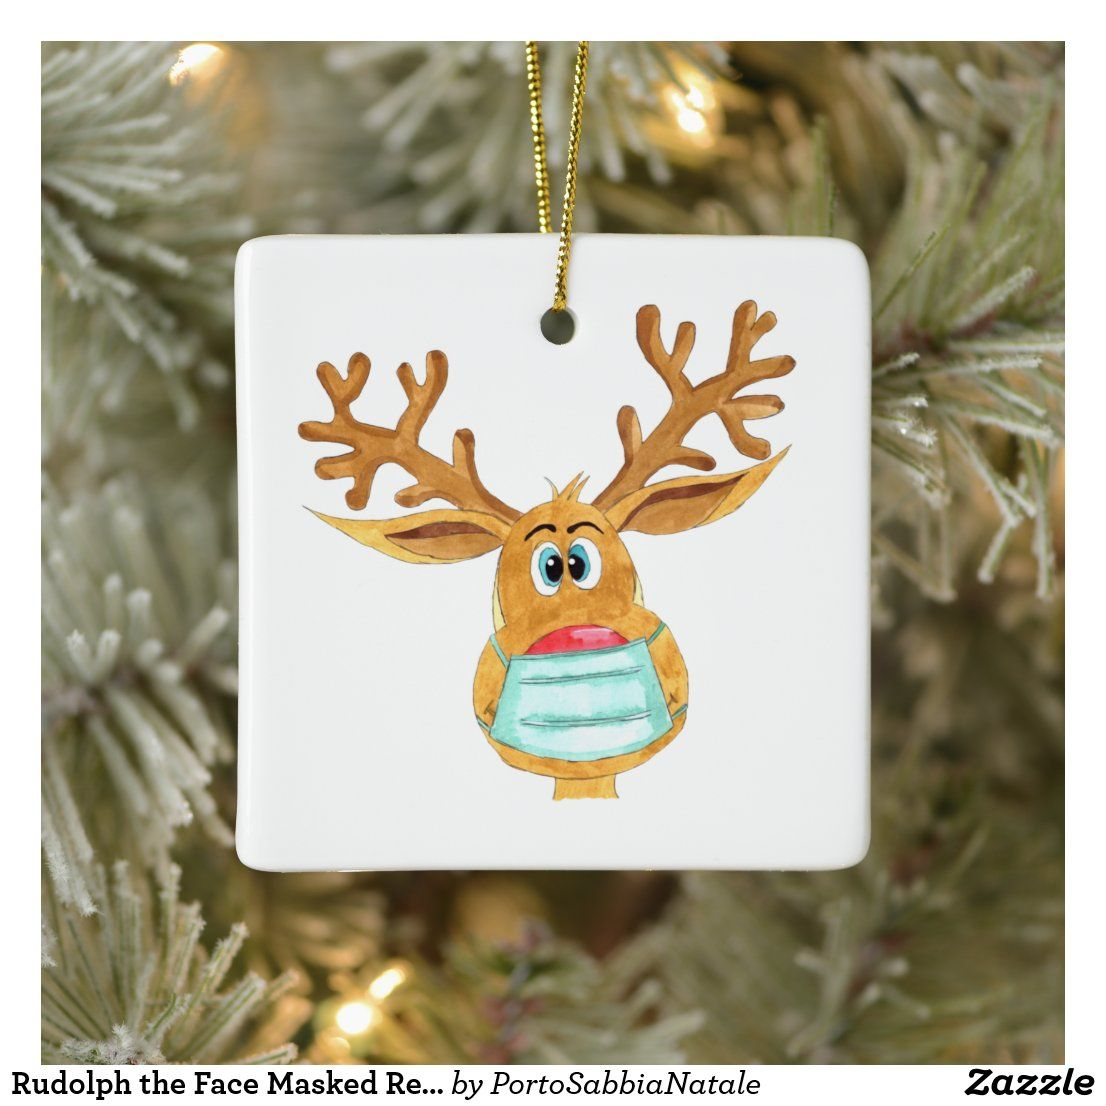 Rudolph The Face Masked Reindeer Ceramic Ornament Zazzle Com Custom Holiday Card Christmas Humor Ornaments